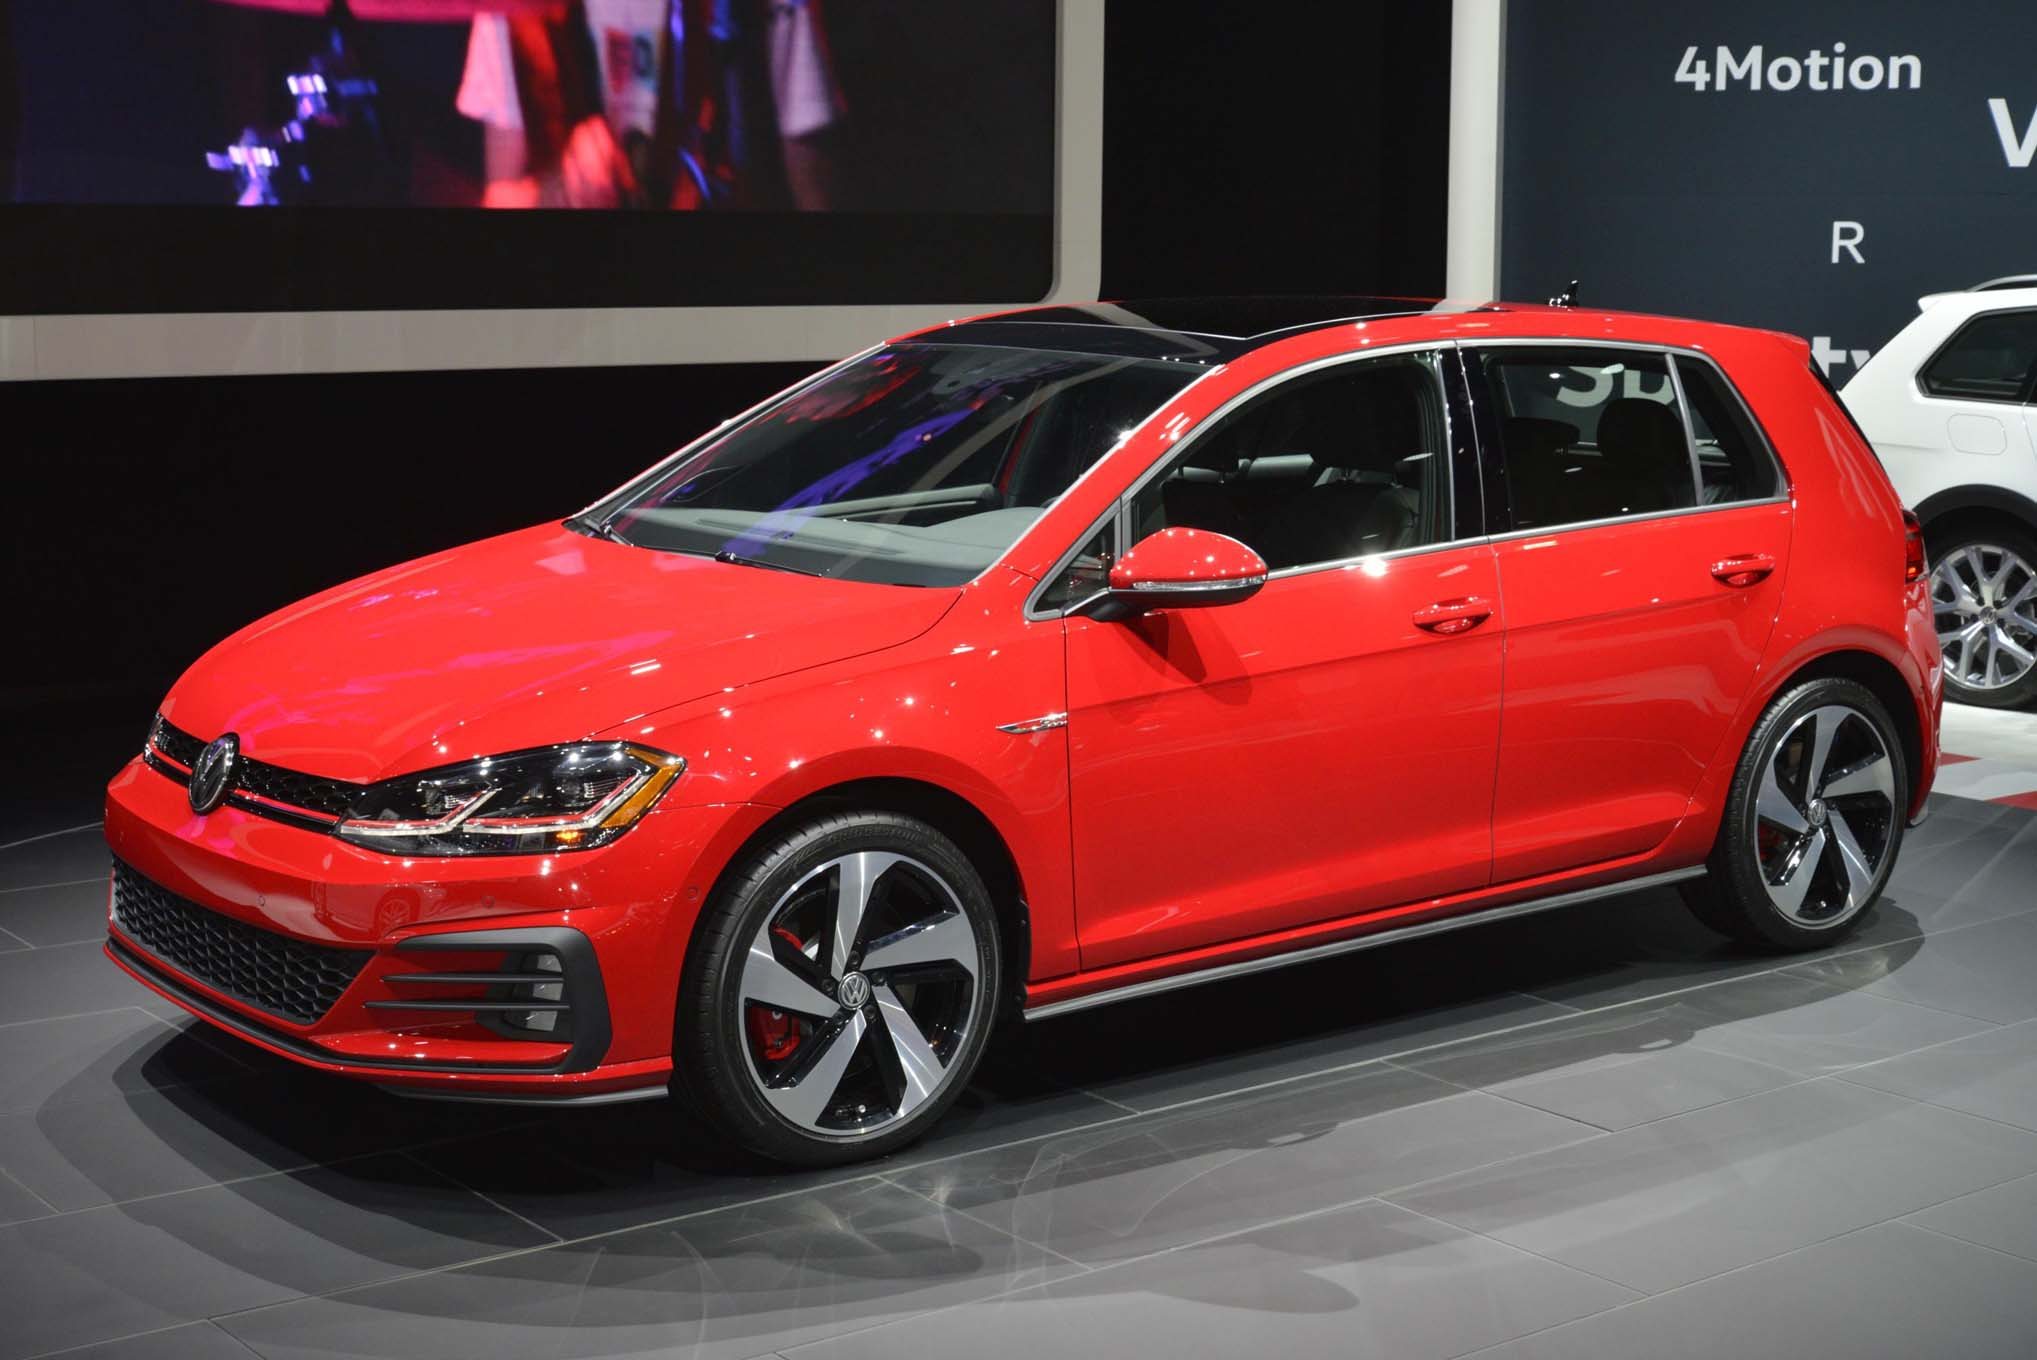 2018 Vw Polo Gti Hybrid Price Release Date Specs Autopromag Show More Volkswagen Produces 150 Millionth Vehicle A Plug In